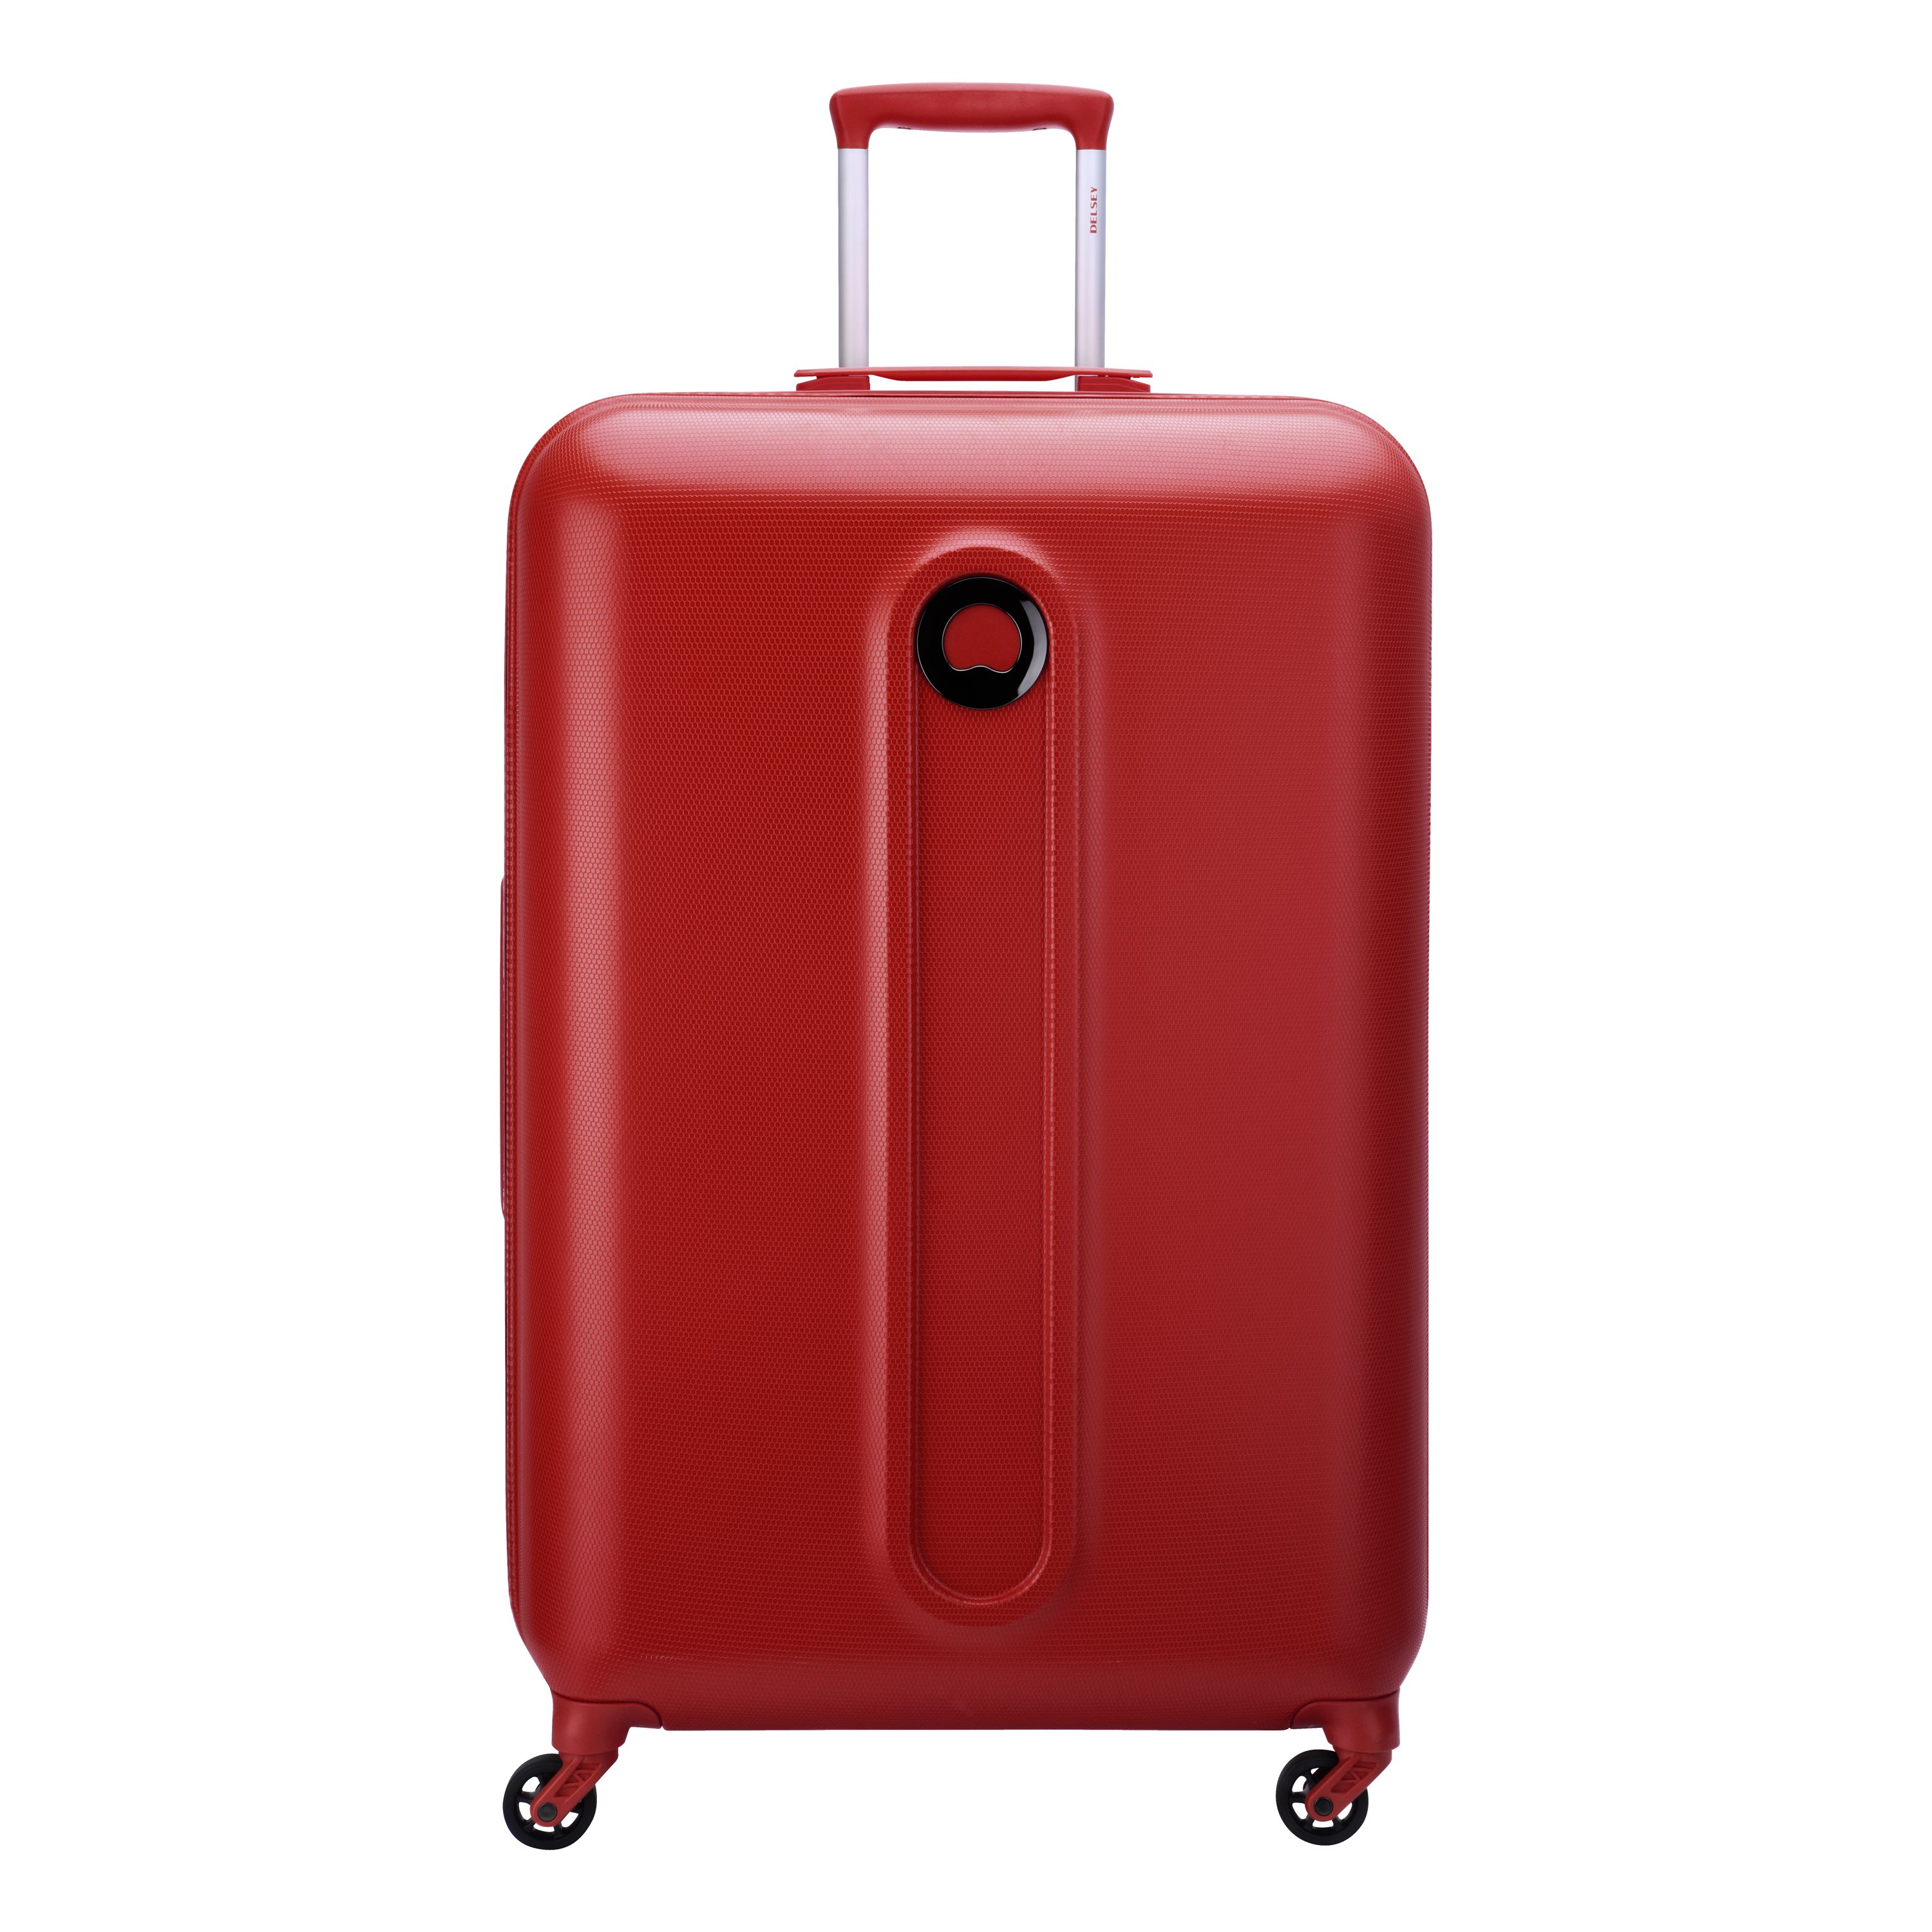 Delsey Helium Classic 78cm Large Red Suitcase, Red